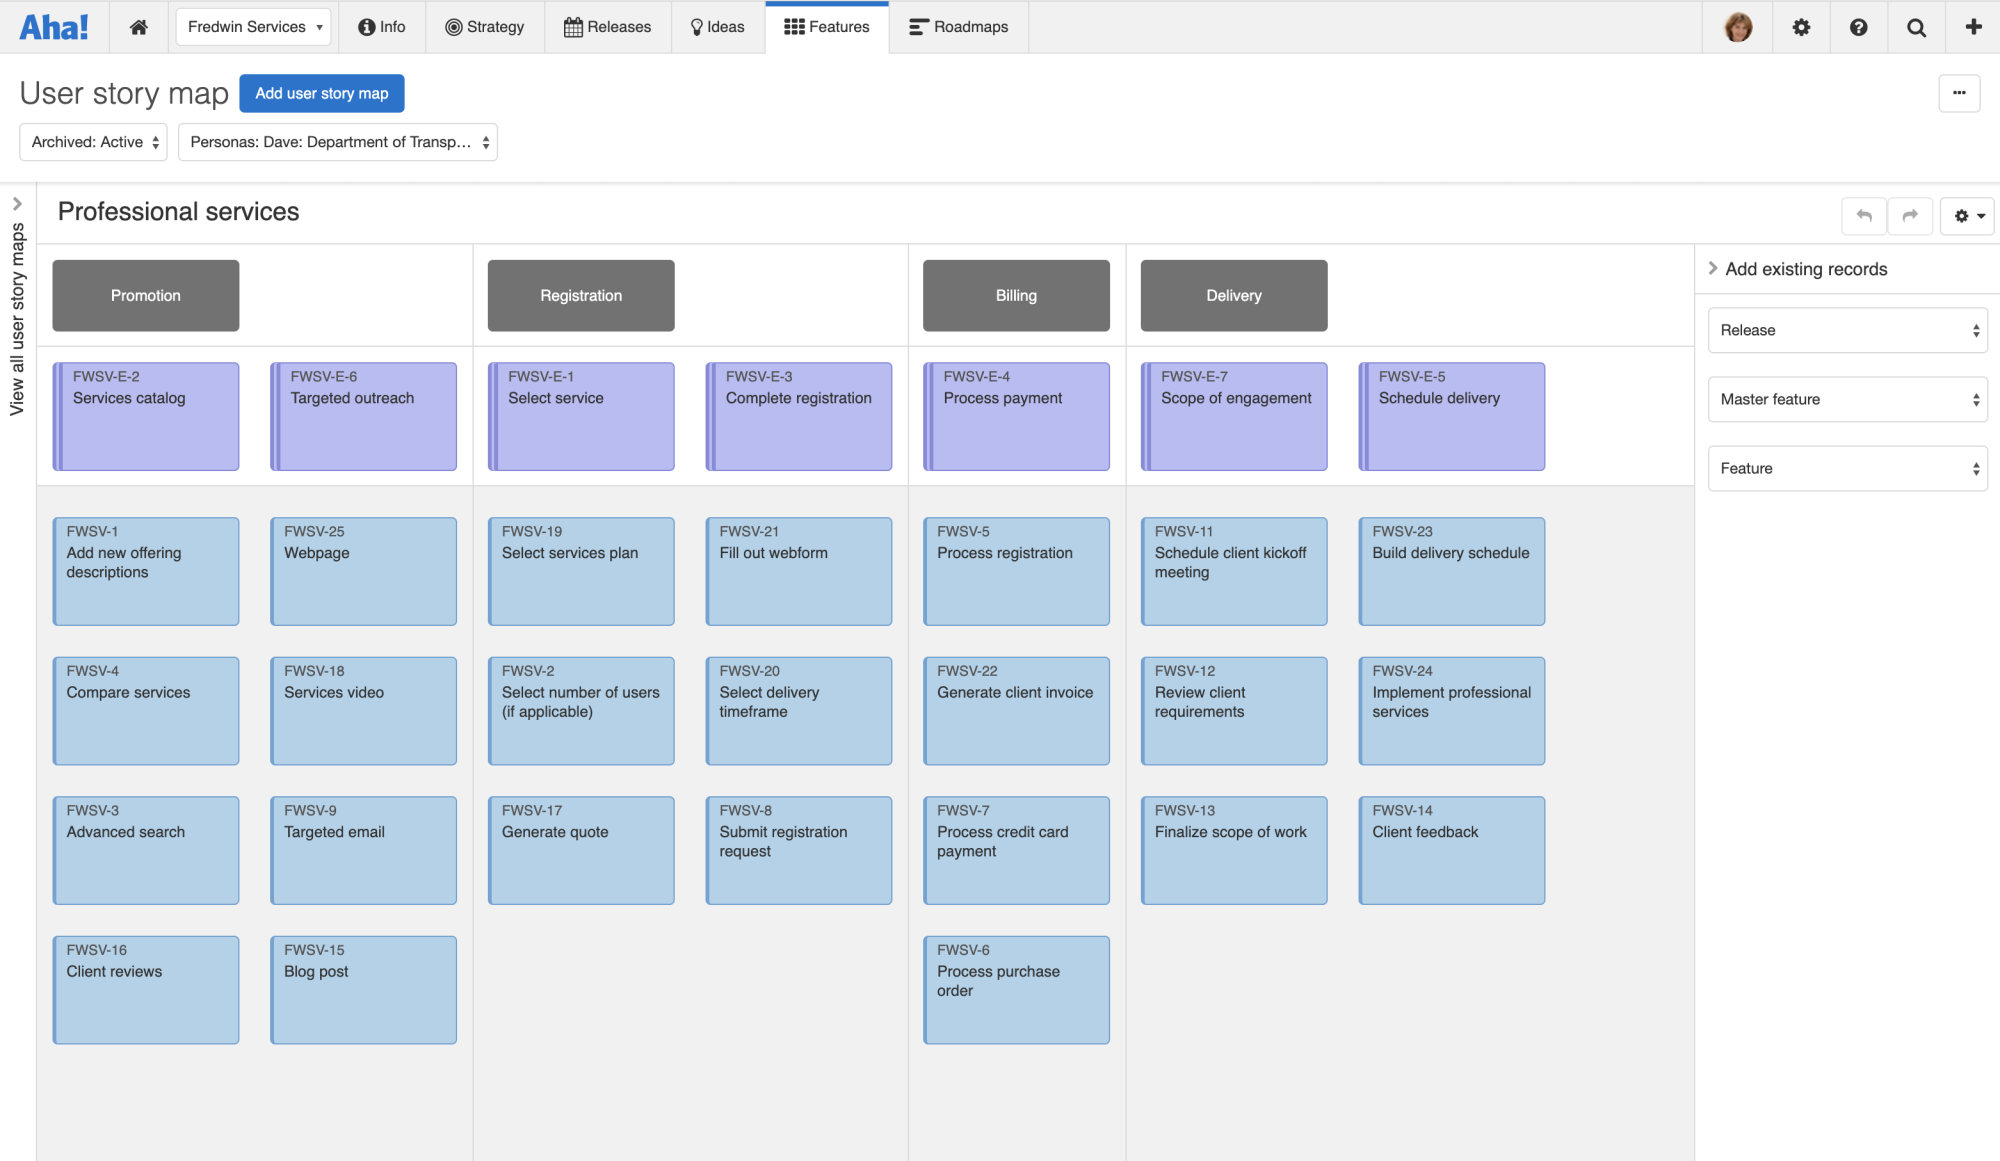 The user story map enables you to create and prioritize work based on what your customer is trying to do.